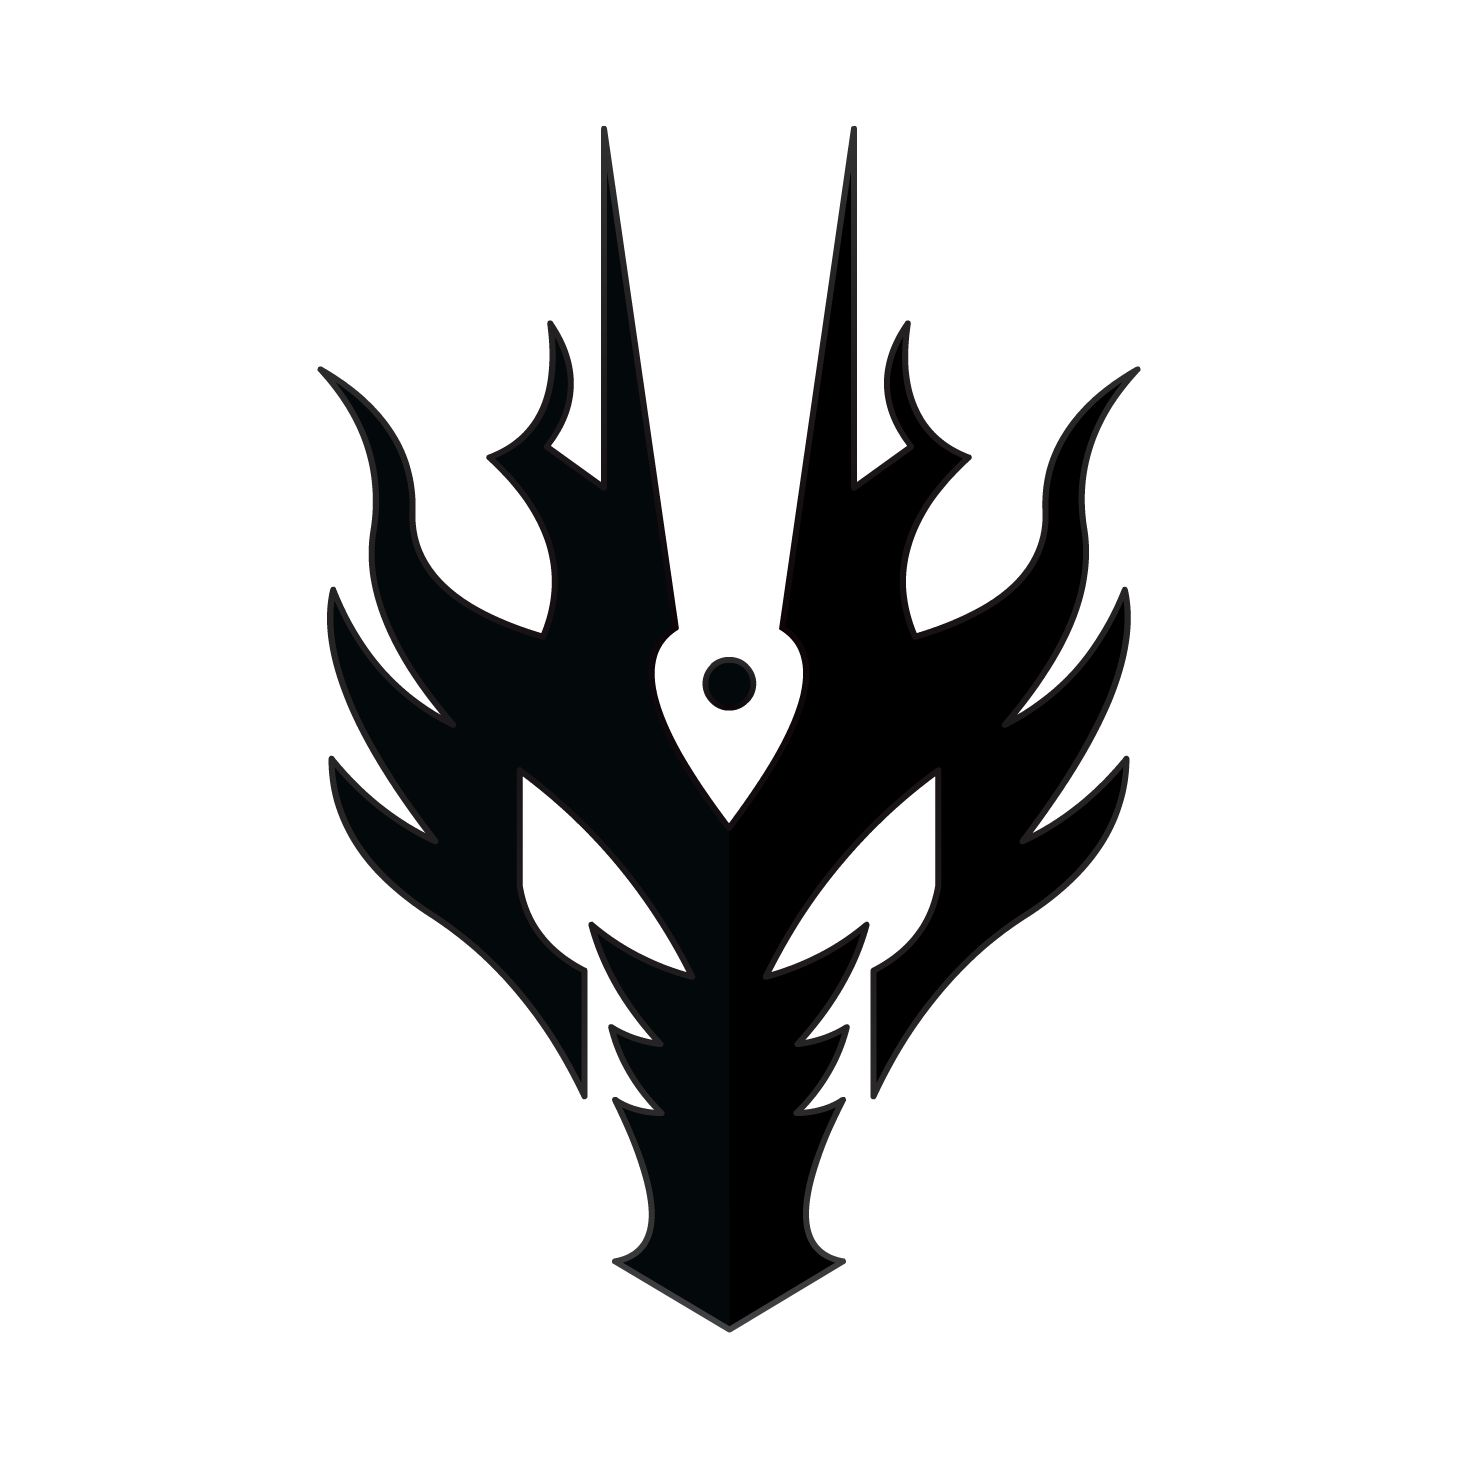 dragon rider logo would look awesome on a shield cool unused band logos good unused logos